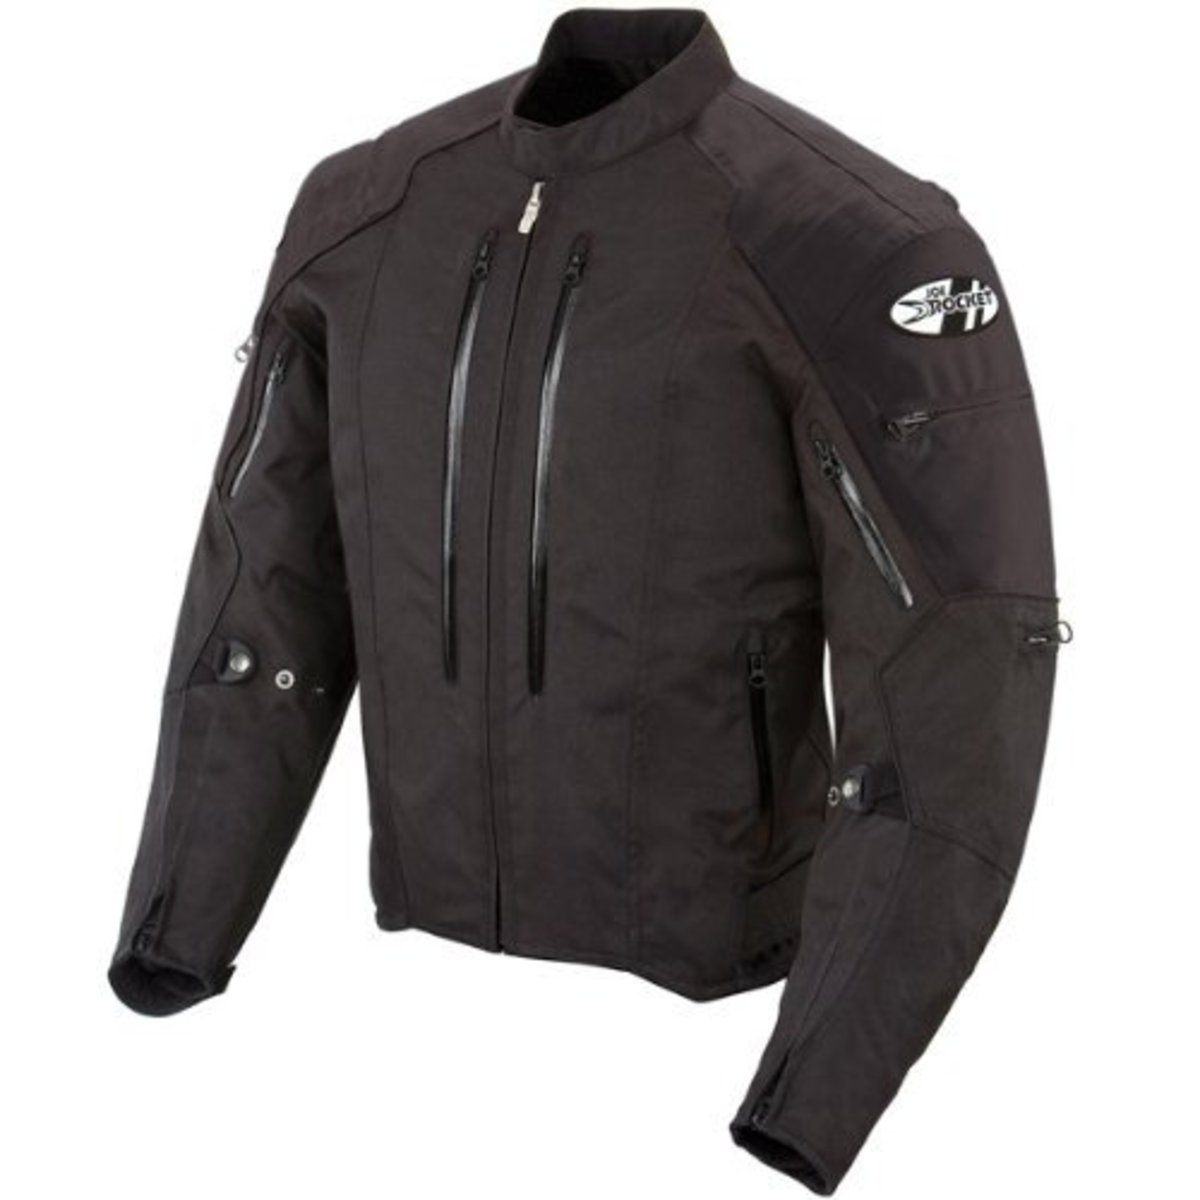 Best Value Inexpensive Motorcycle Jackets for Men (Under $200)